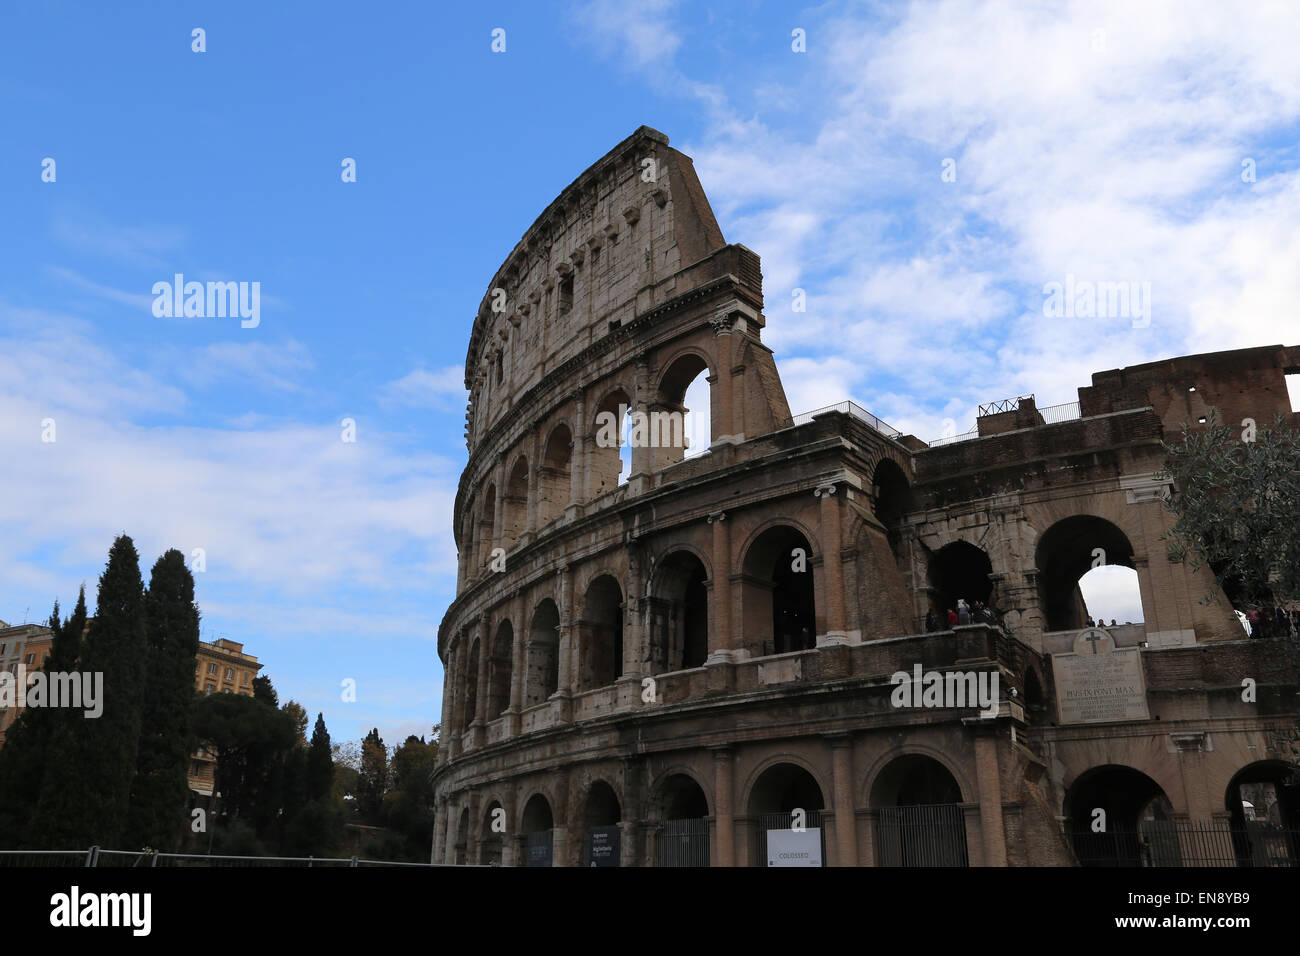 Italy. Rome. The Colosseum (Coliseum) or Flavian Amphitheatre. - Stock Image